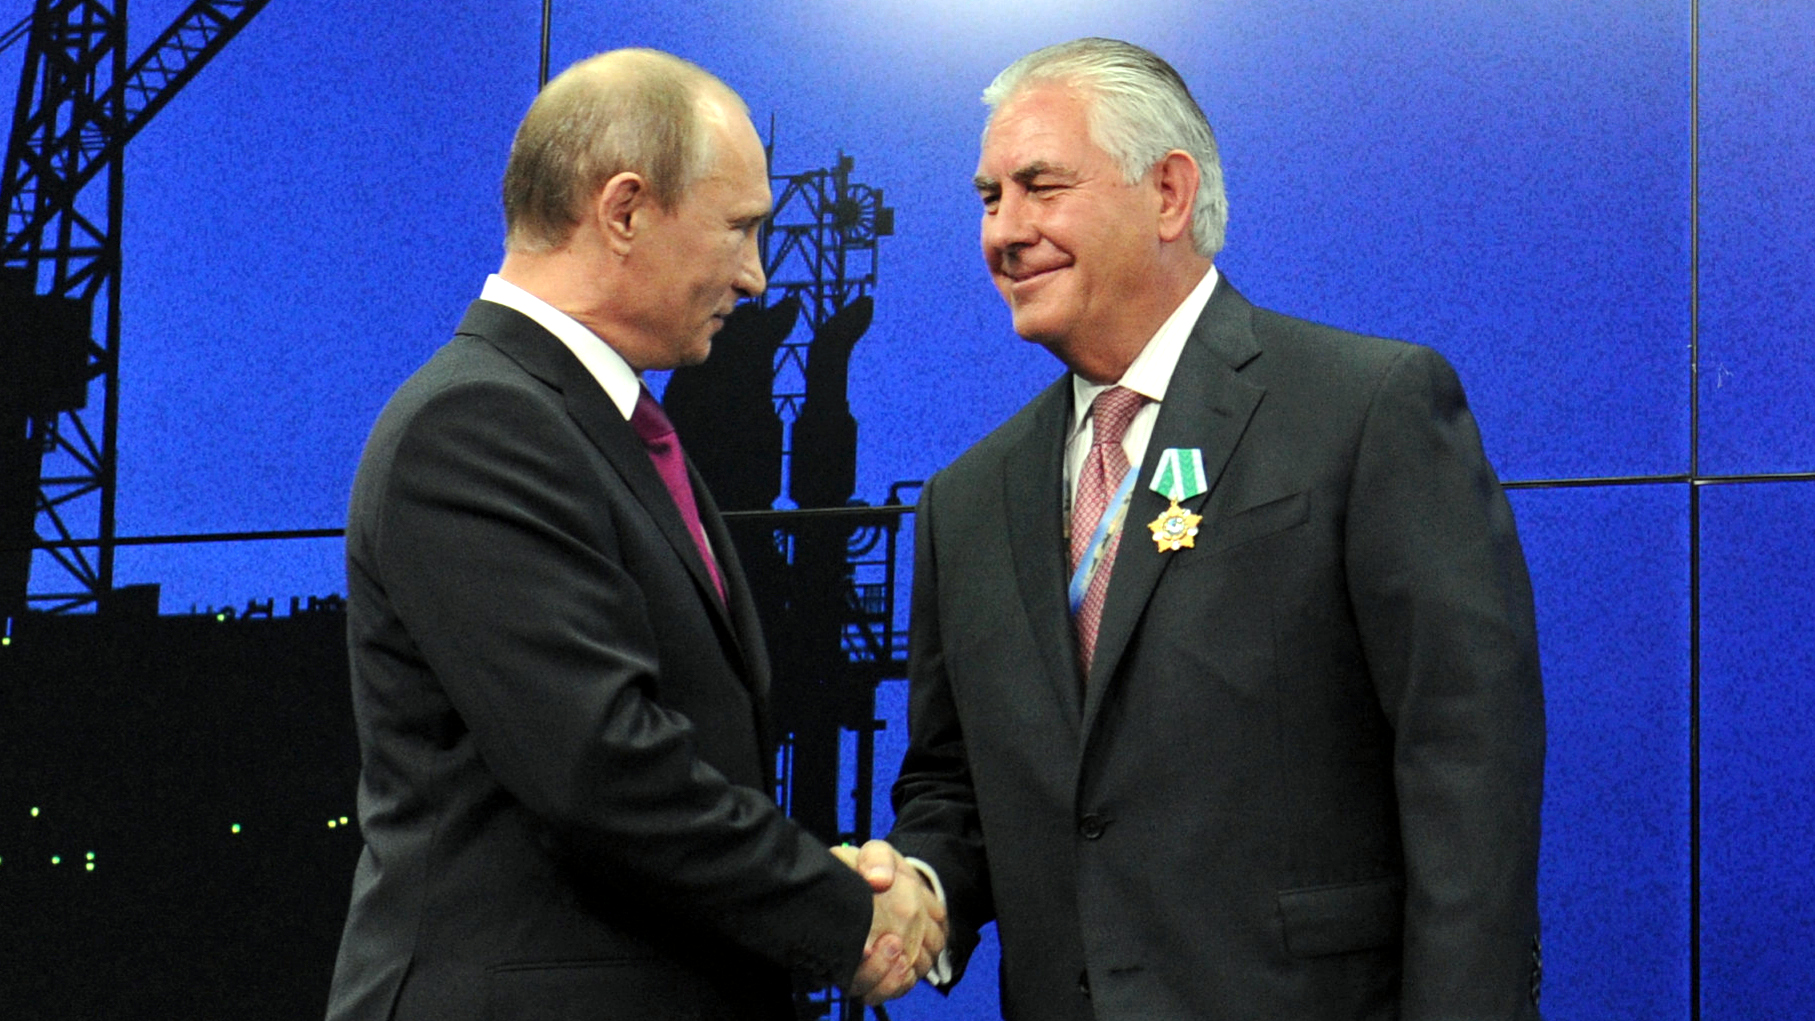 In this photo taken Thursday, June 21, 2012, Russian President Vladimir Putin presents ExxonMobil CEO Rex Tillerson with a Russian medal at an award ceremony of heads and employees of energy companies at the St. Petersburg economic forum in St. Petersburg, Russia.